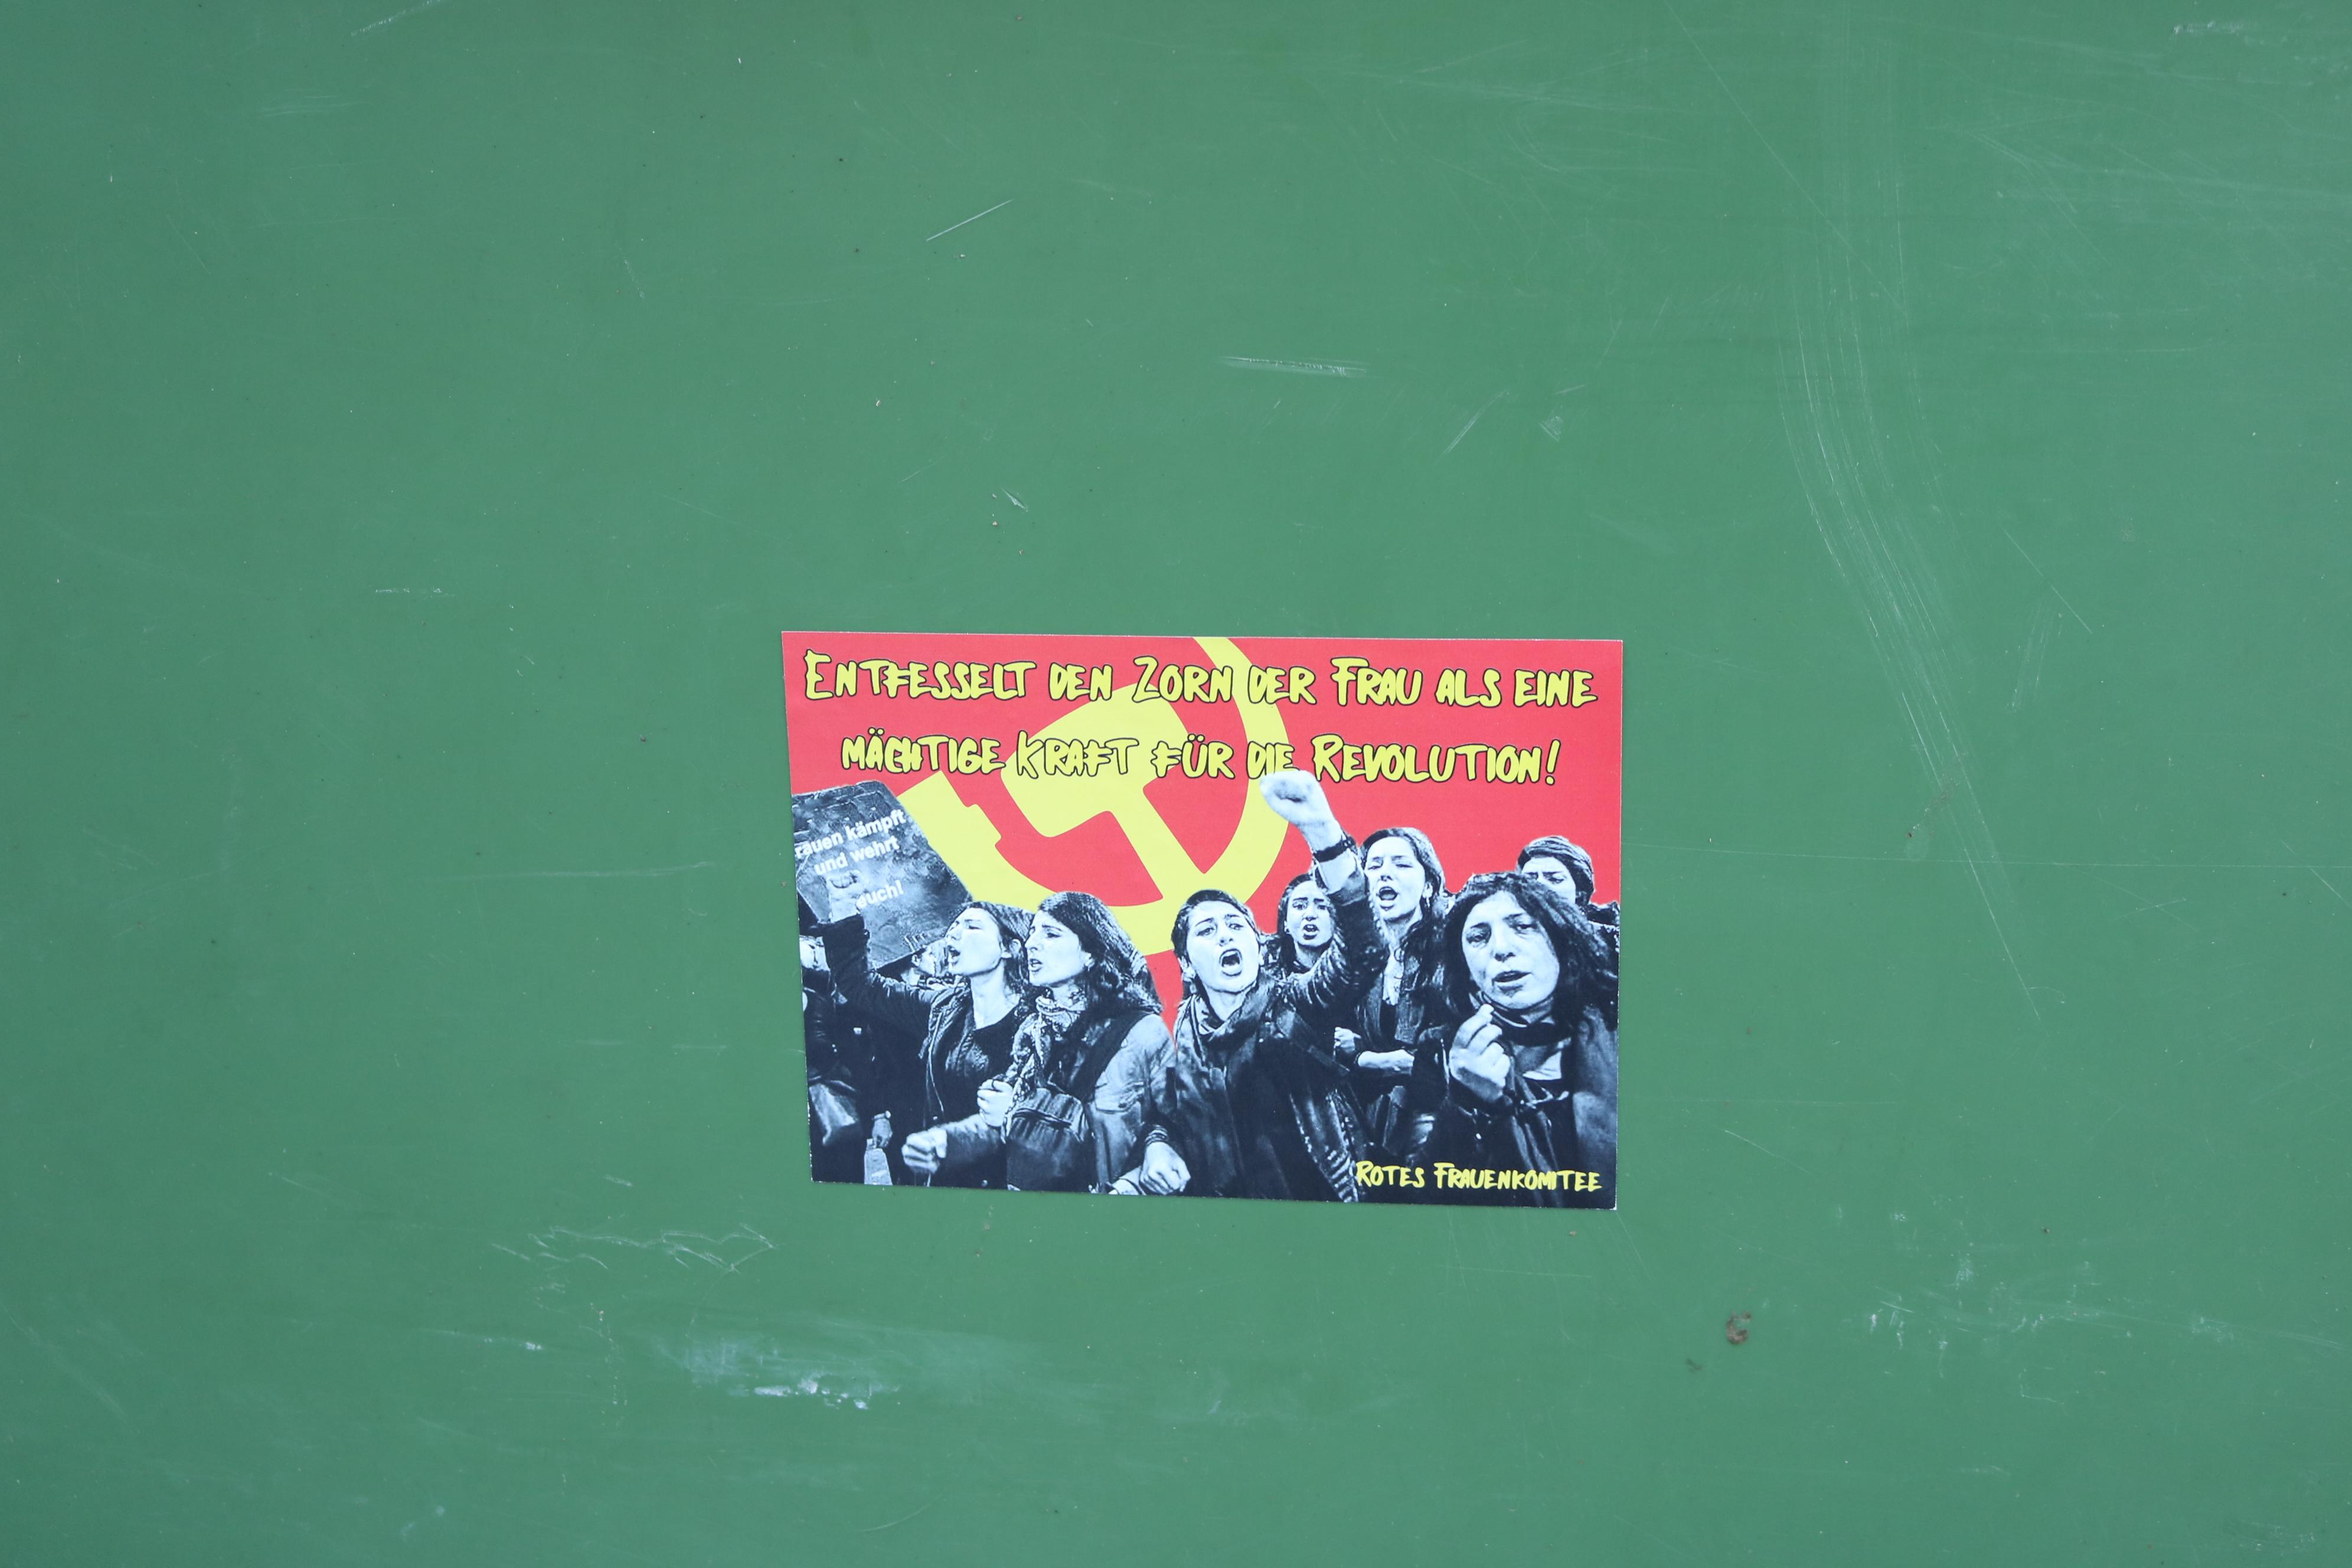 rotes frauenkomitee sticker 1